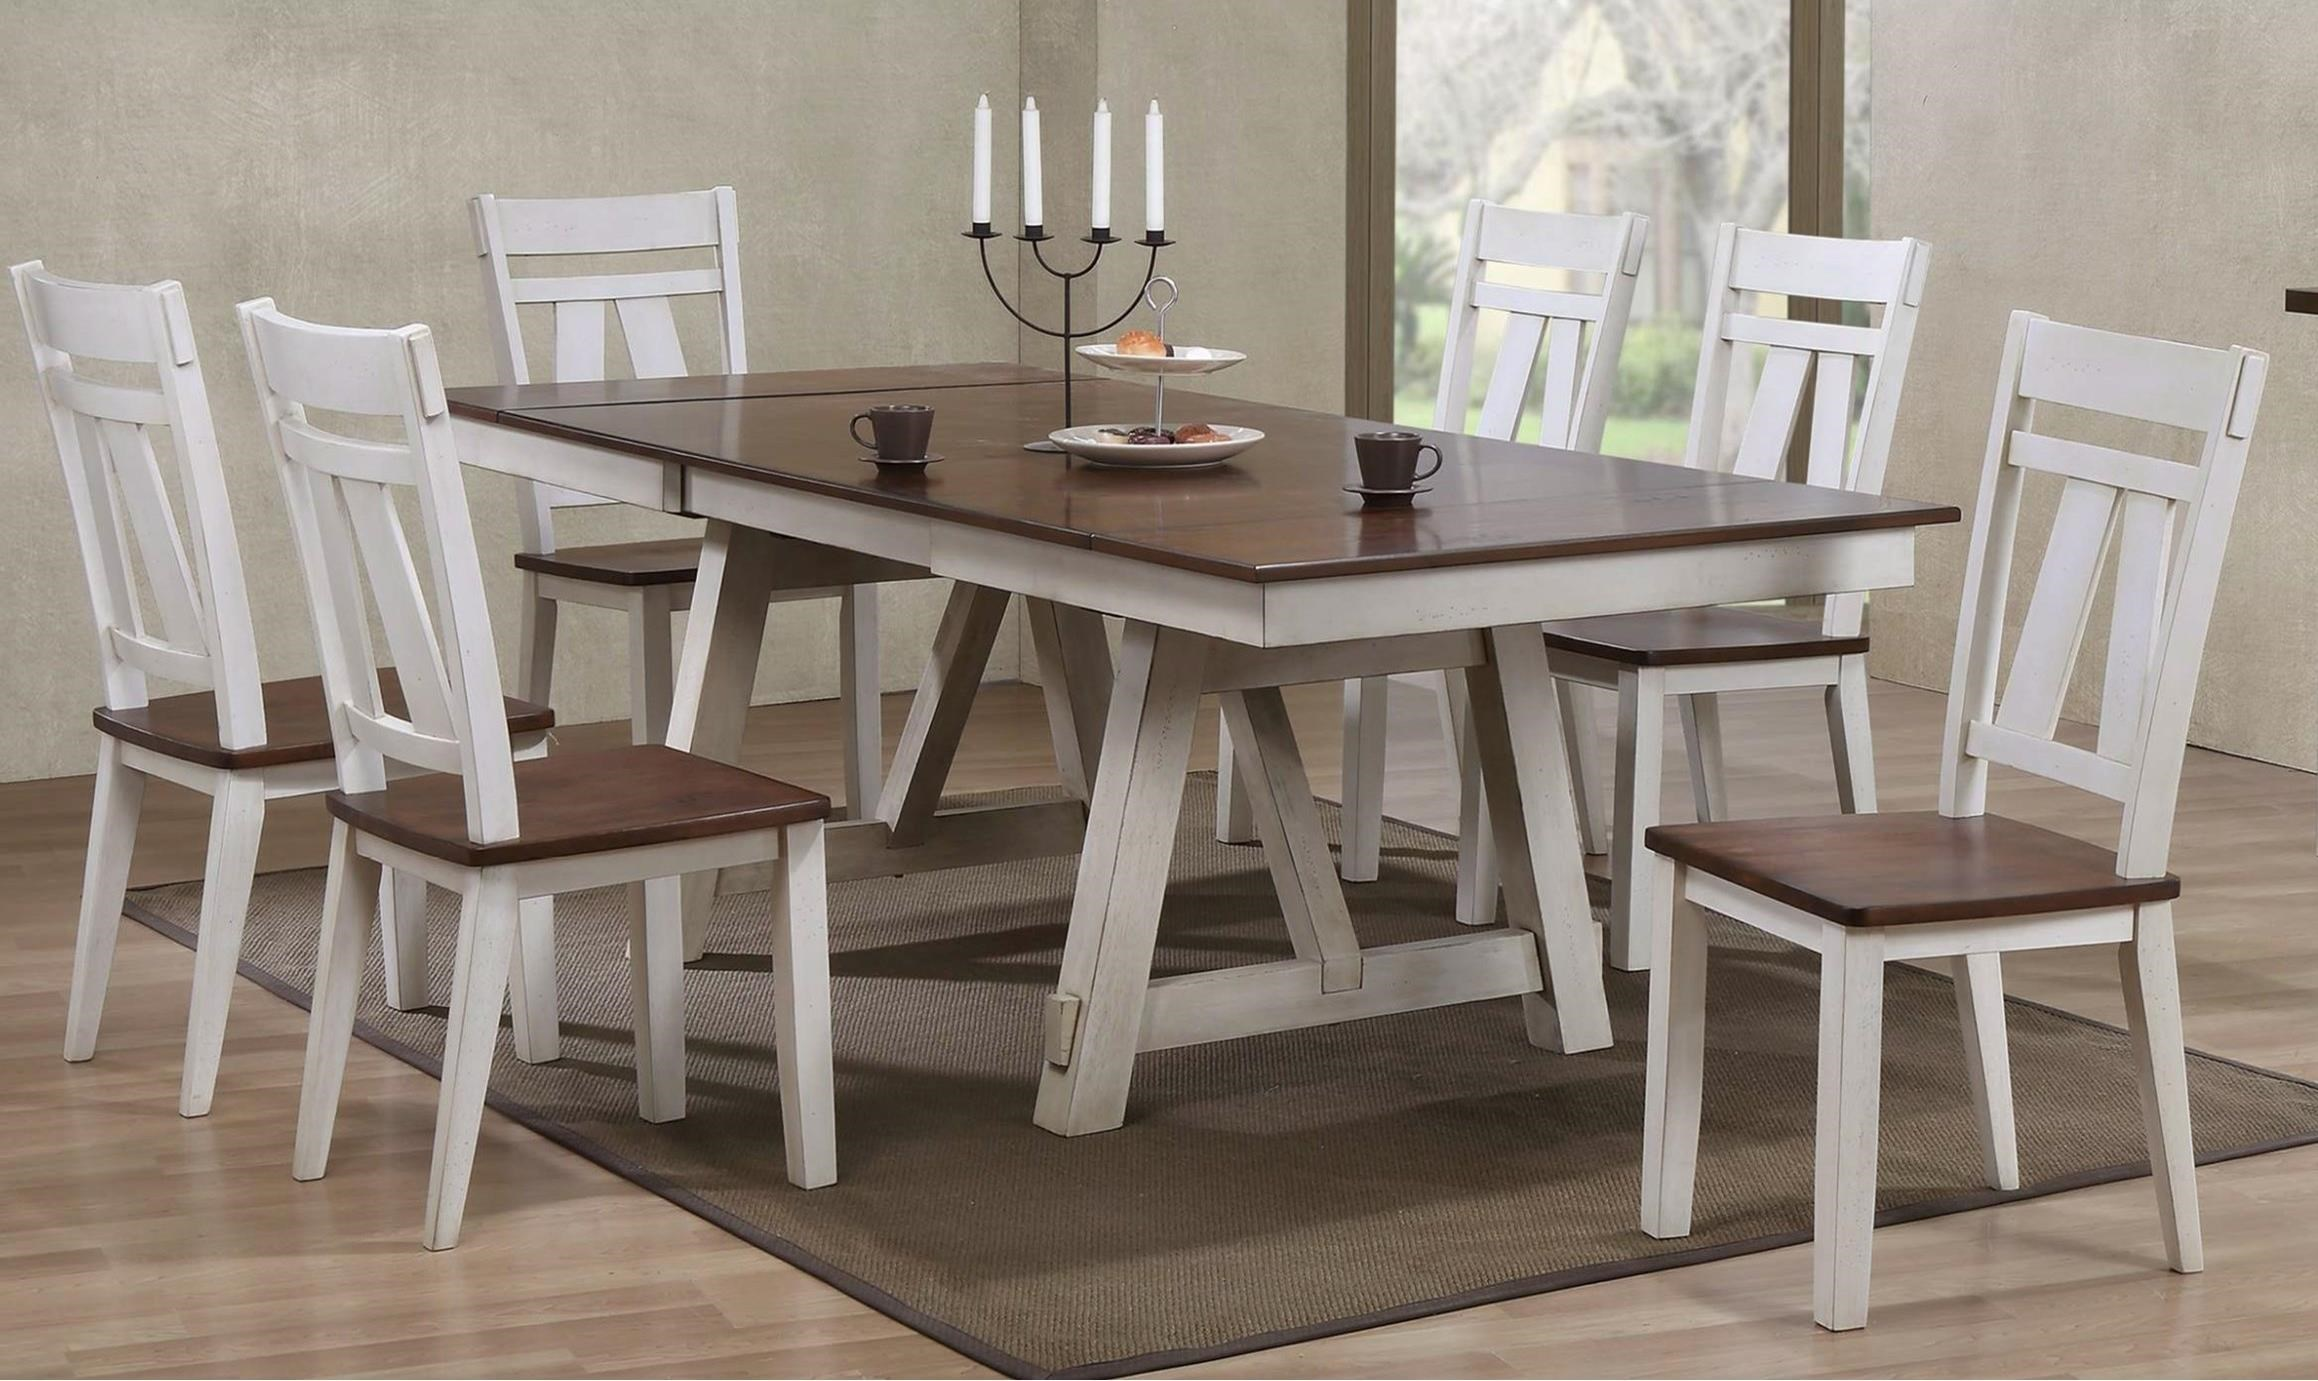 bernards winslow 7 piece two tone refectory table set   royal furniture   dining 7  or more  piece sets bernards winslow 7 piece two tone refectory table set   royal      rh   royalfurniture com